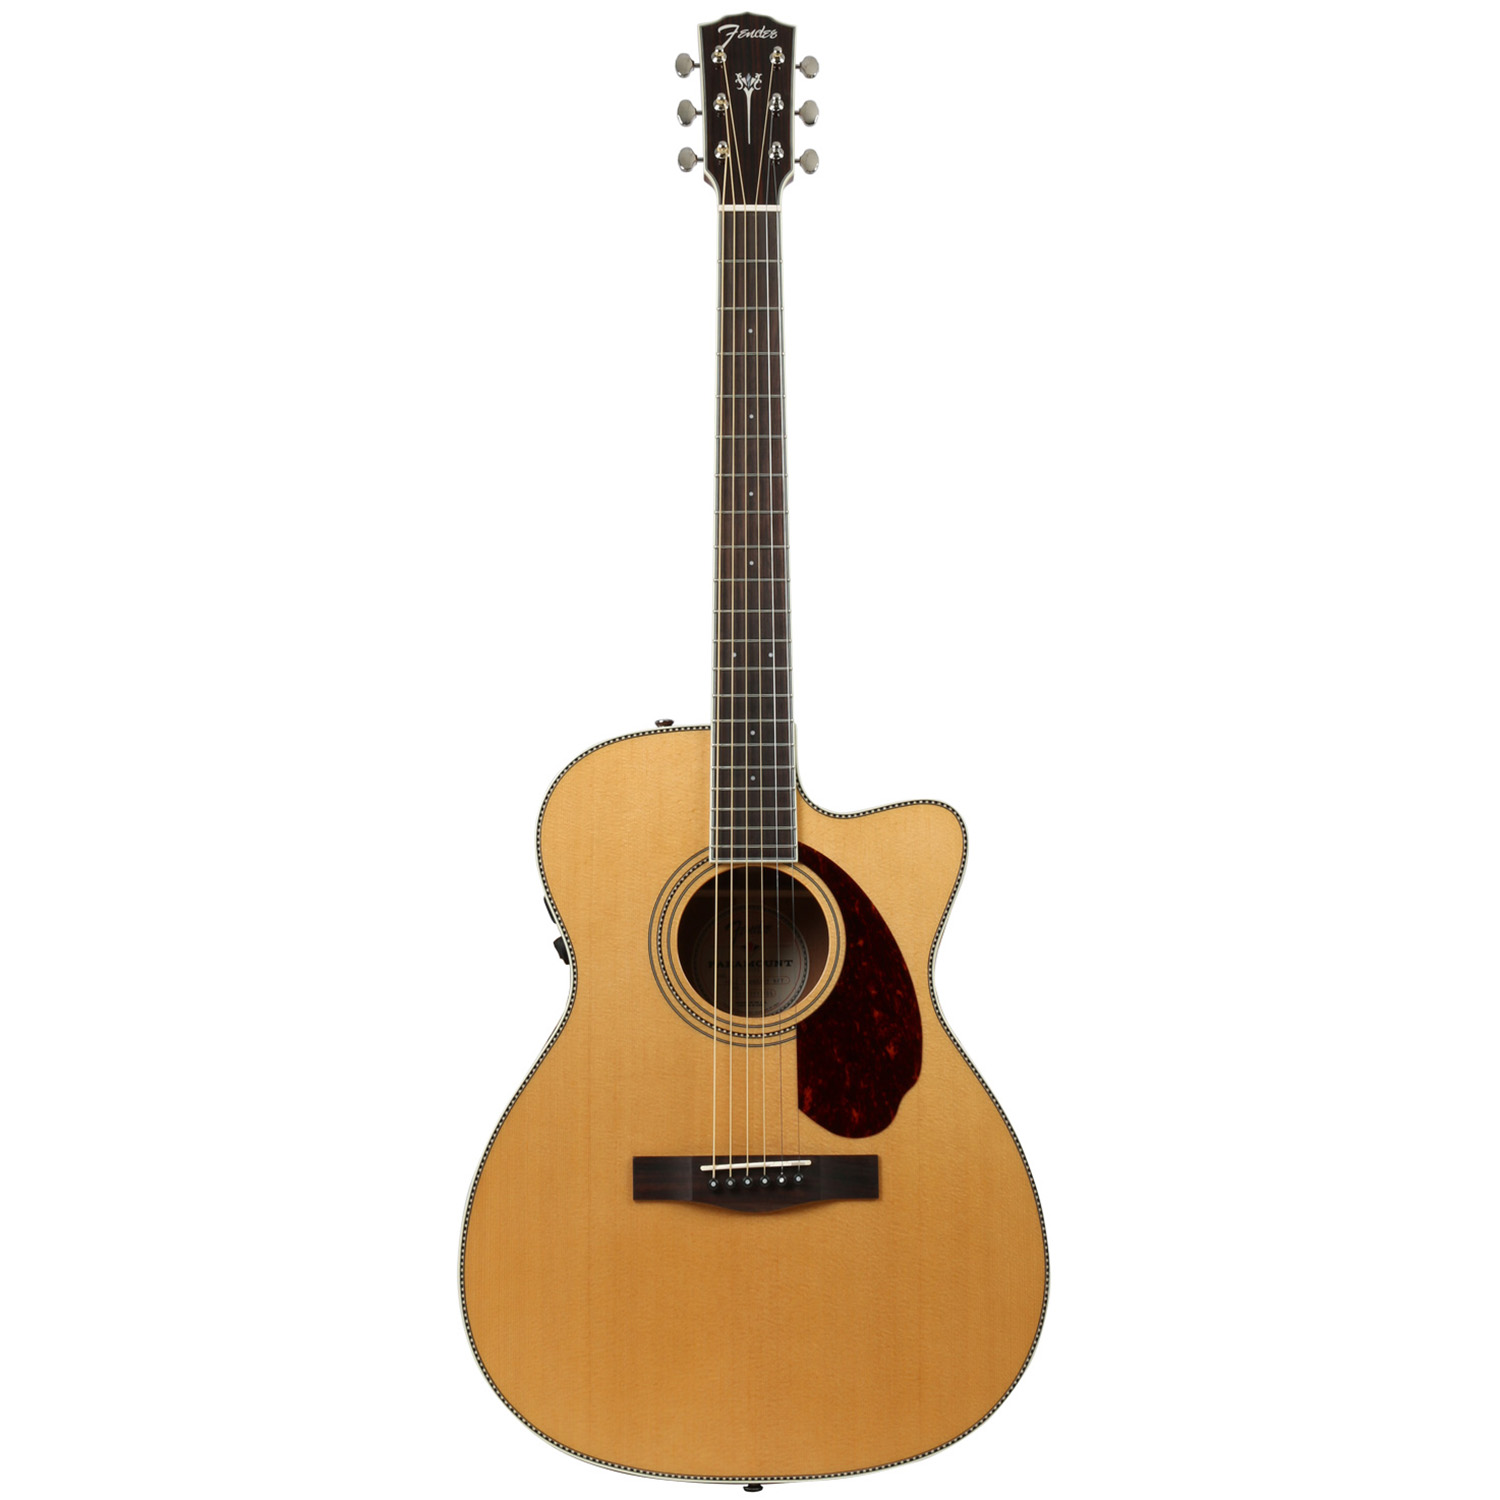 Fender Paramount PM 3 Standard Triple O Natural Stained Ovangkol